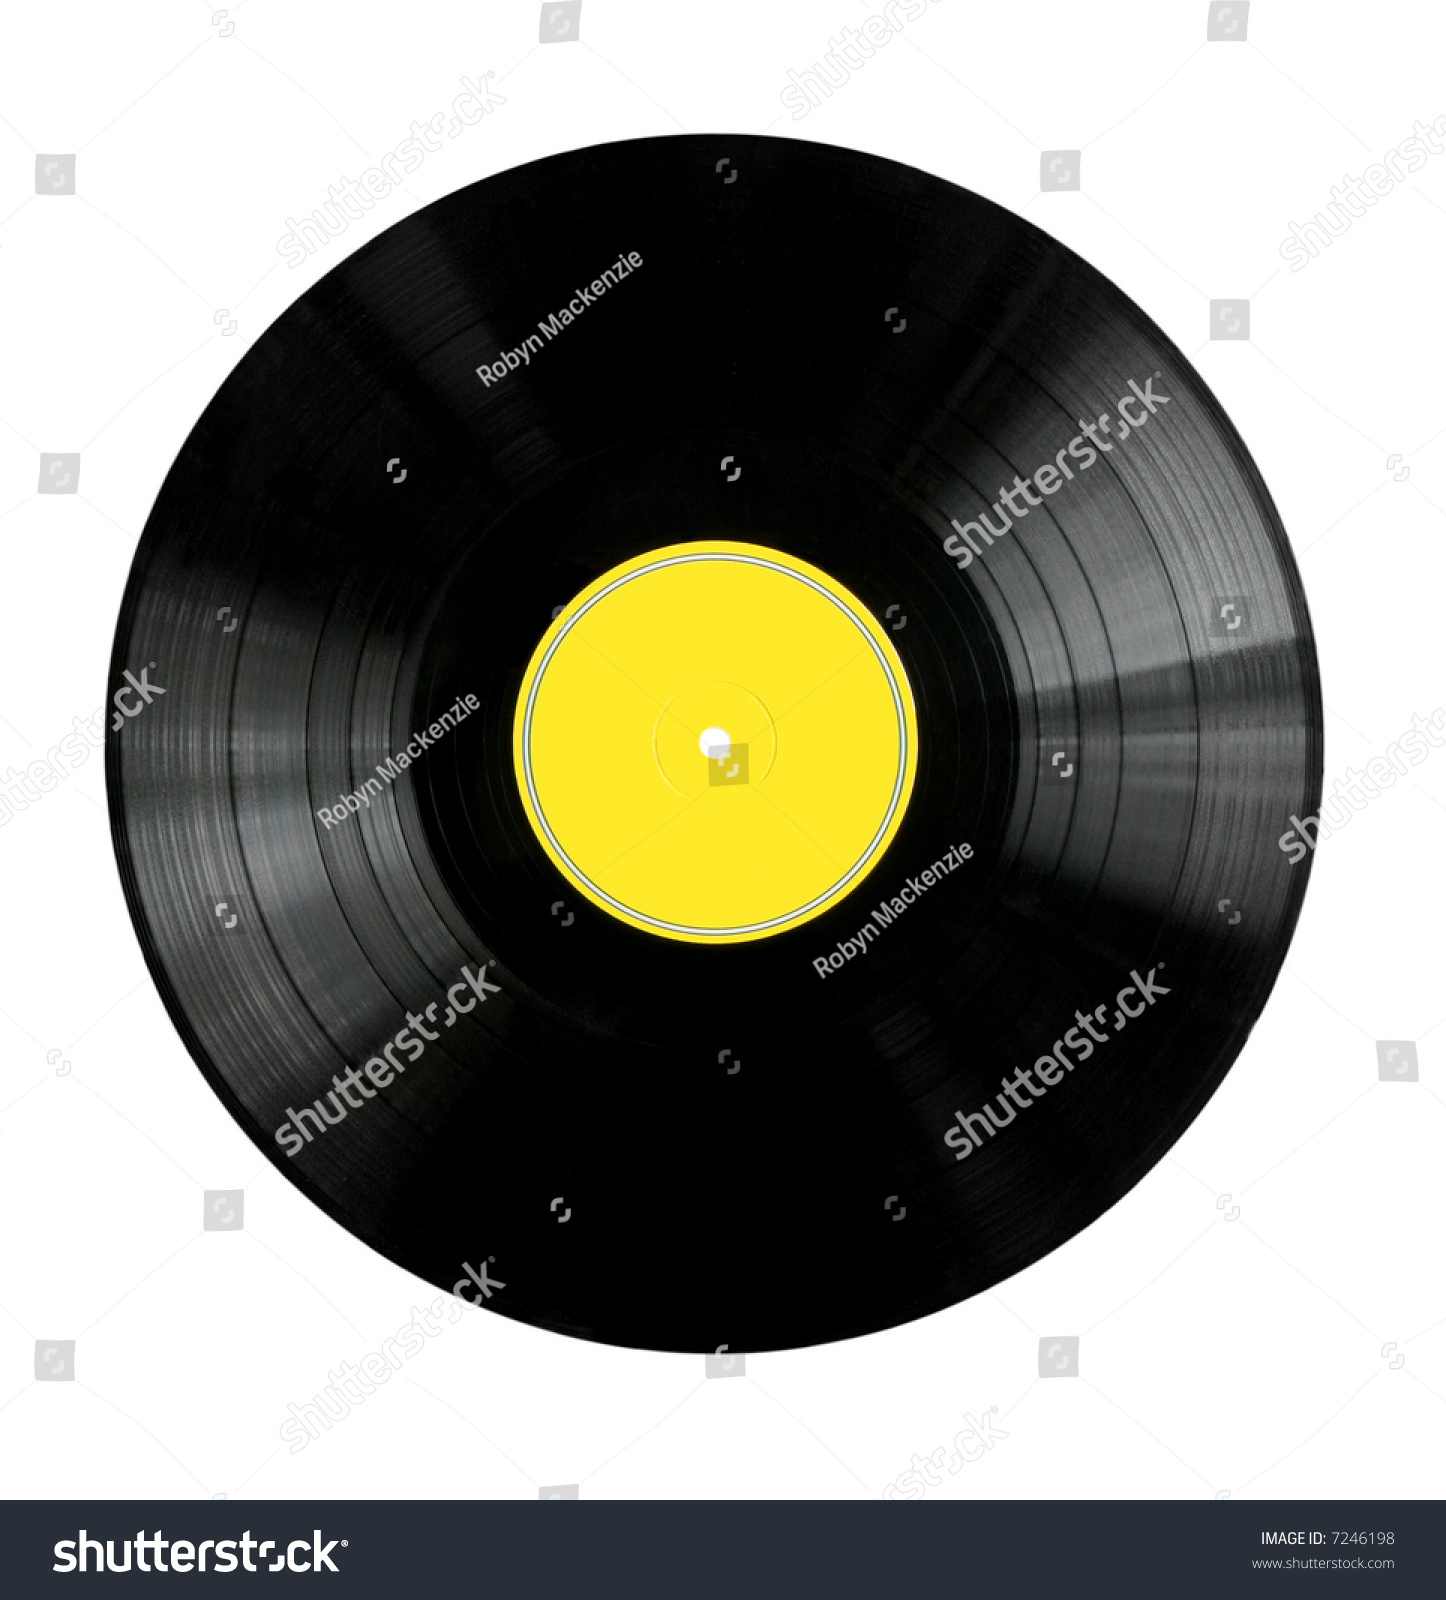 vinyl 33rpm record with yellow label stock photo 7246198 shutterstock. Black Bedroom Furniture Sets. Home Design Ideas